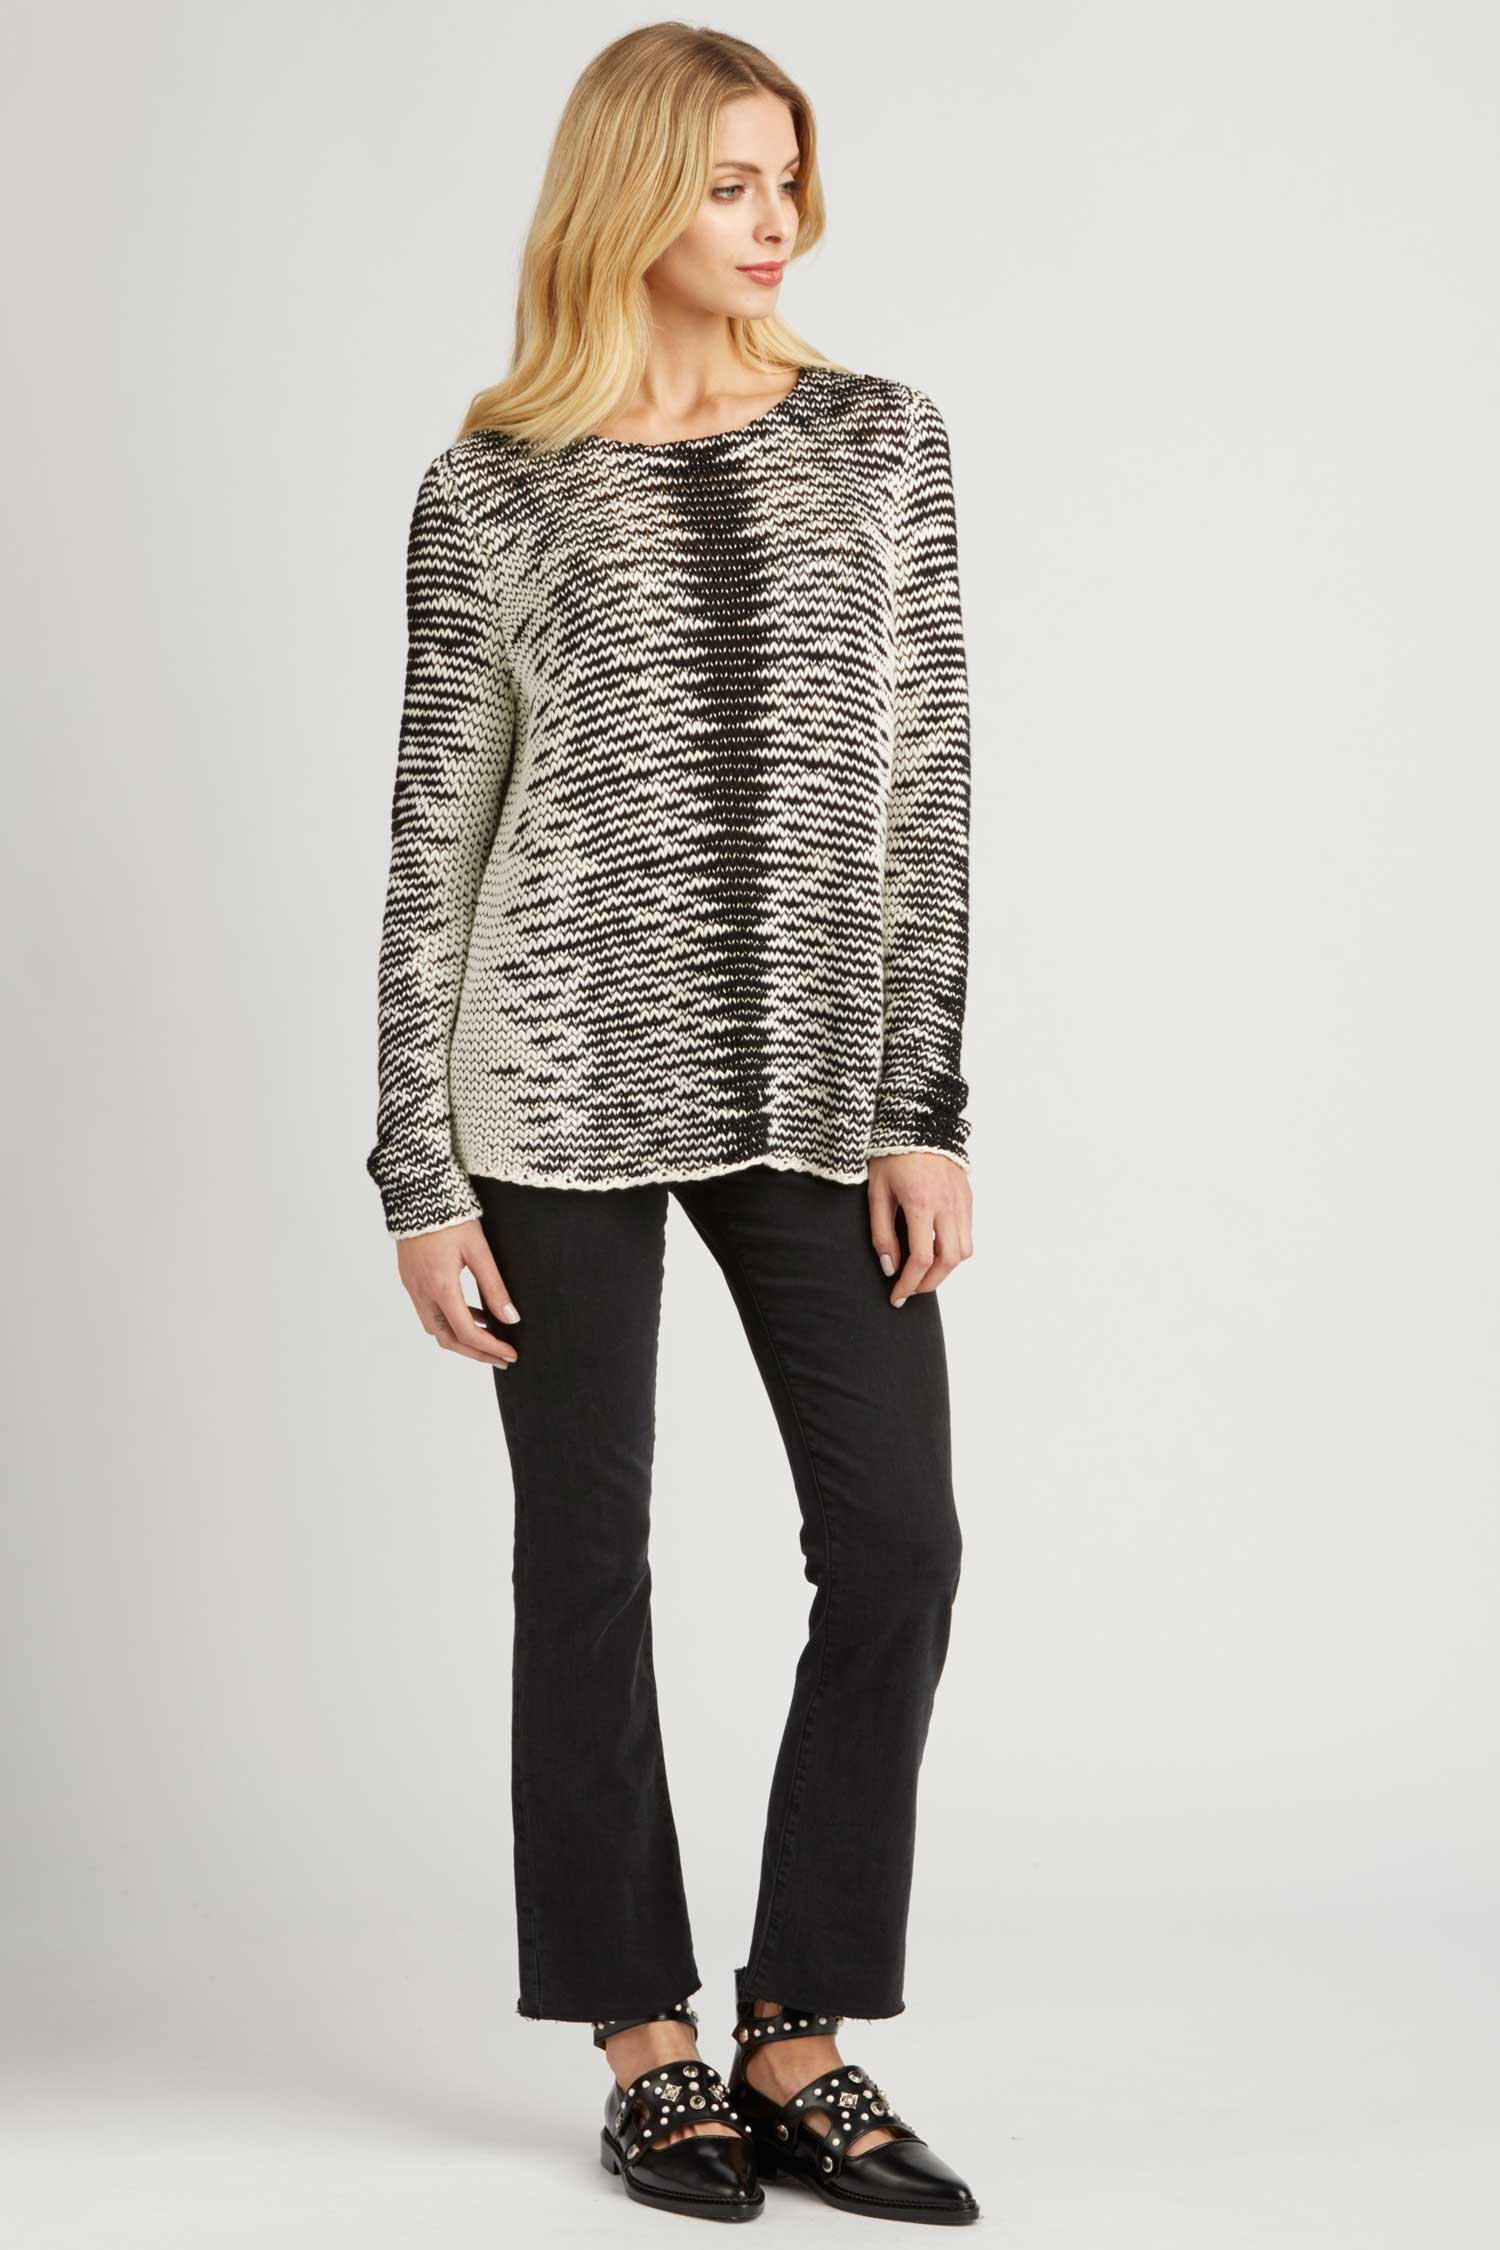 Womens Organic Cotton Knit Sweater | Ivory Black Pattern